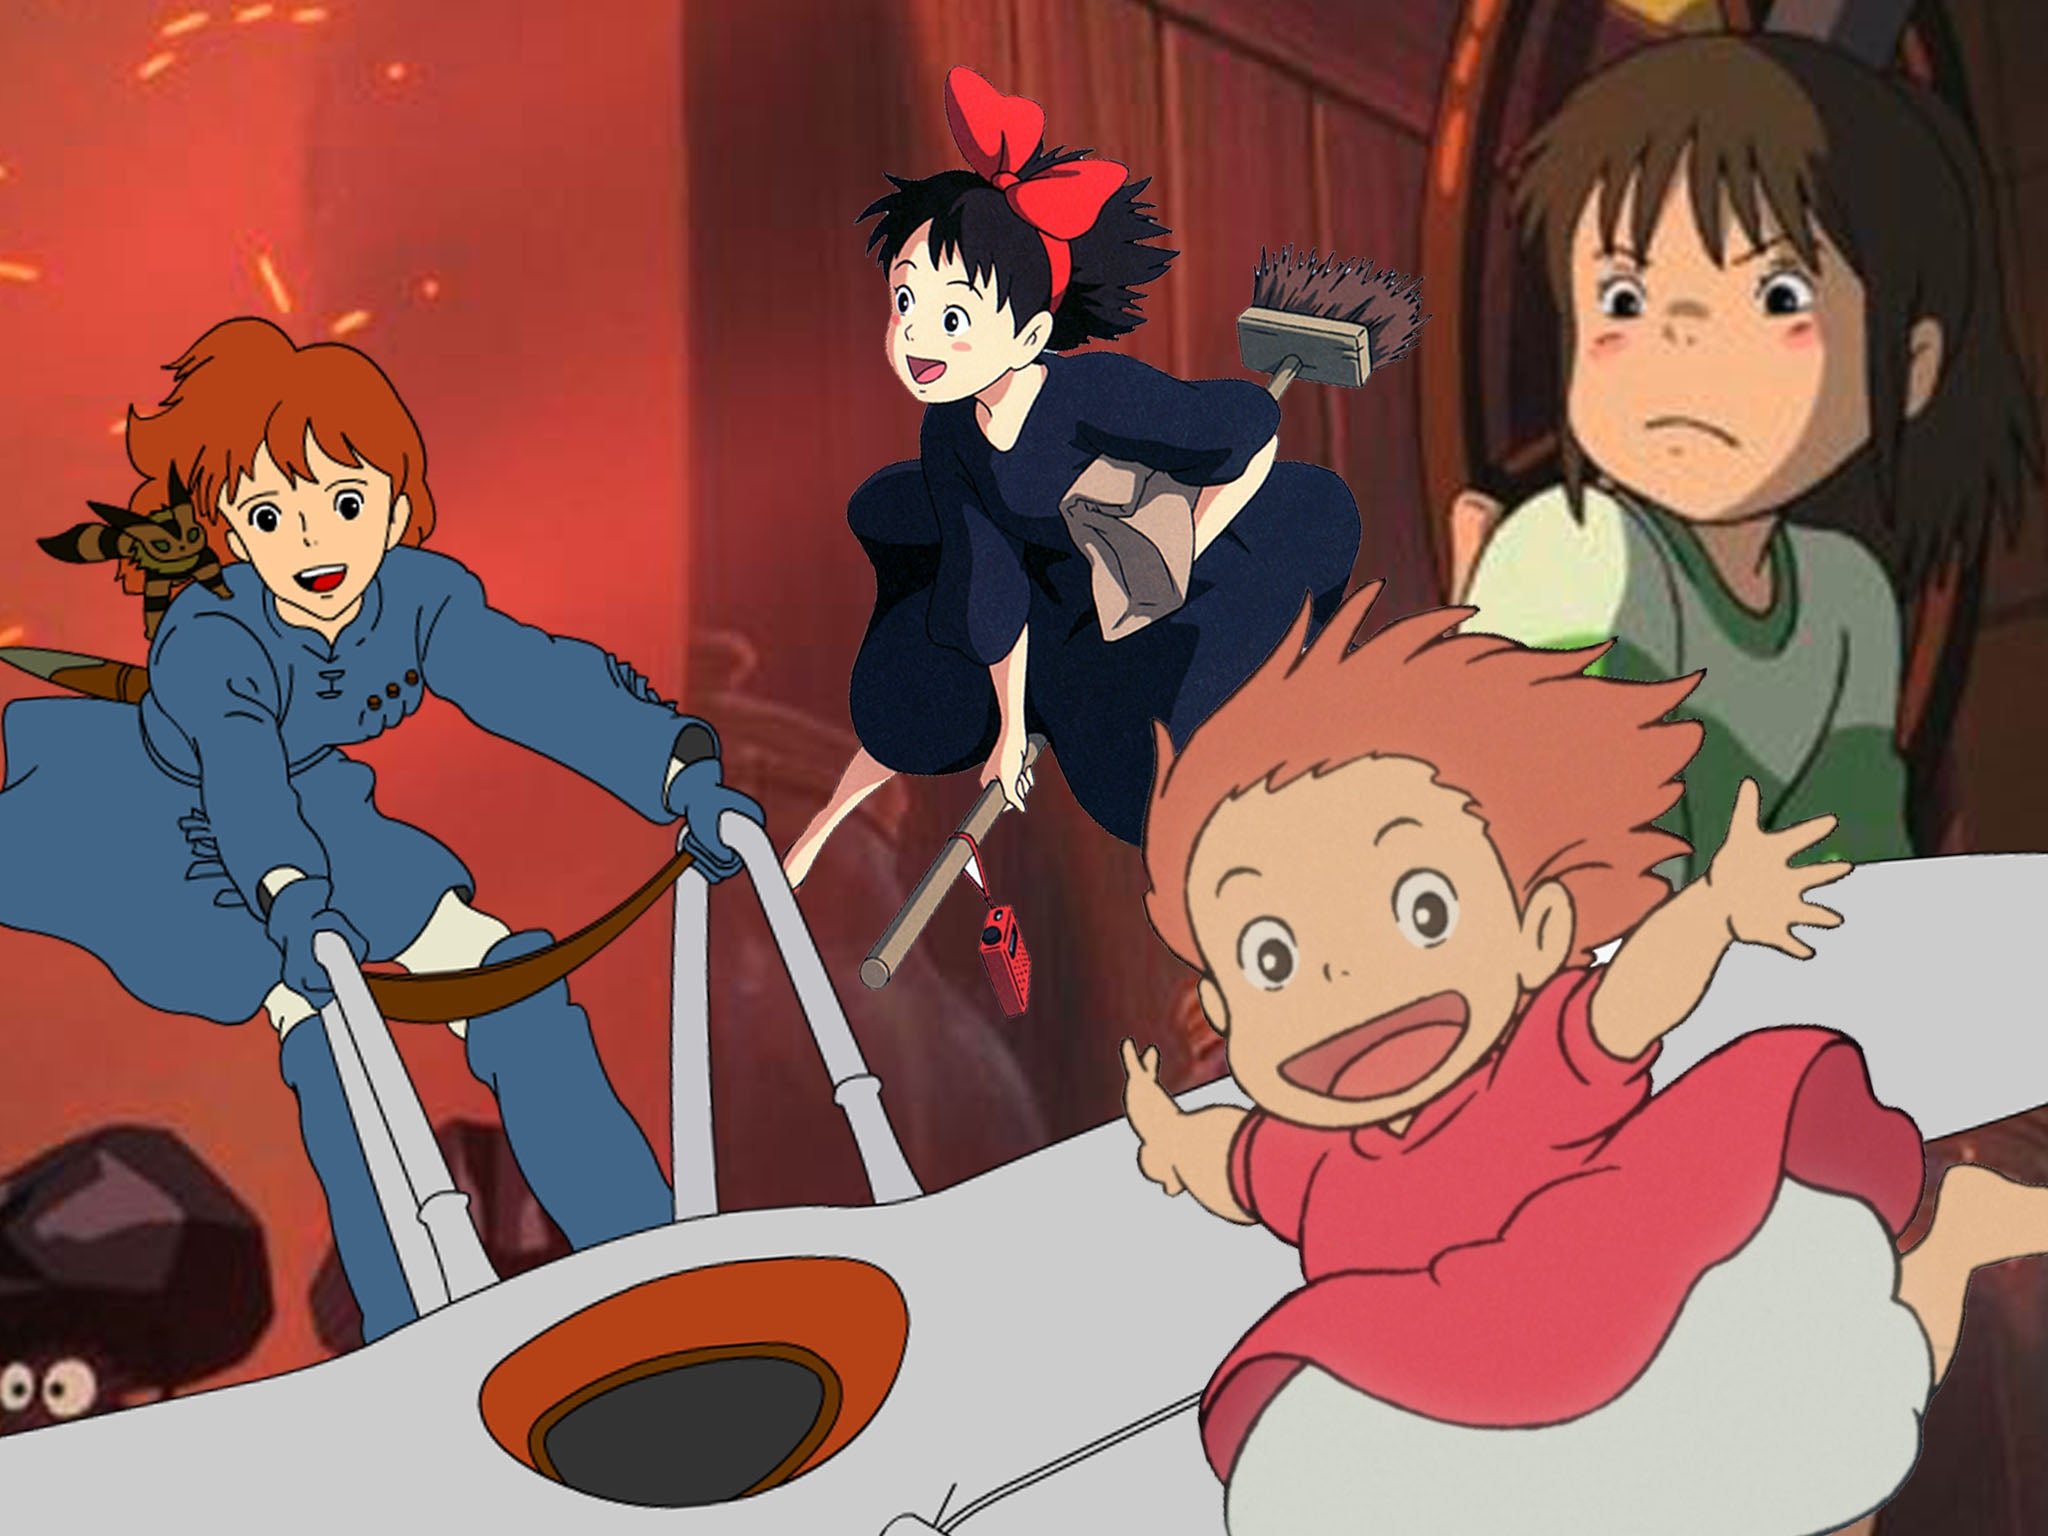 It S Good To Be Alive The Studio Ghibli Films Are Coming To Netflix At Just The Right Time The Independent The Independent